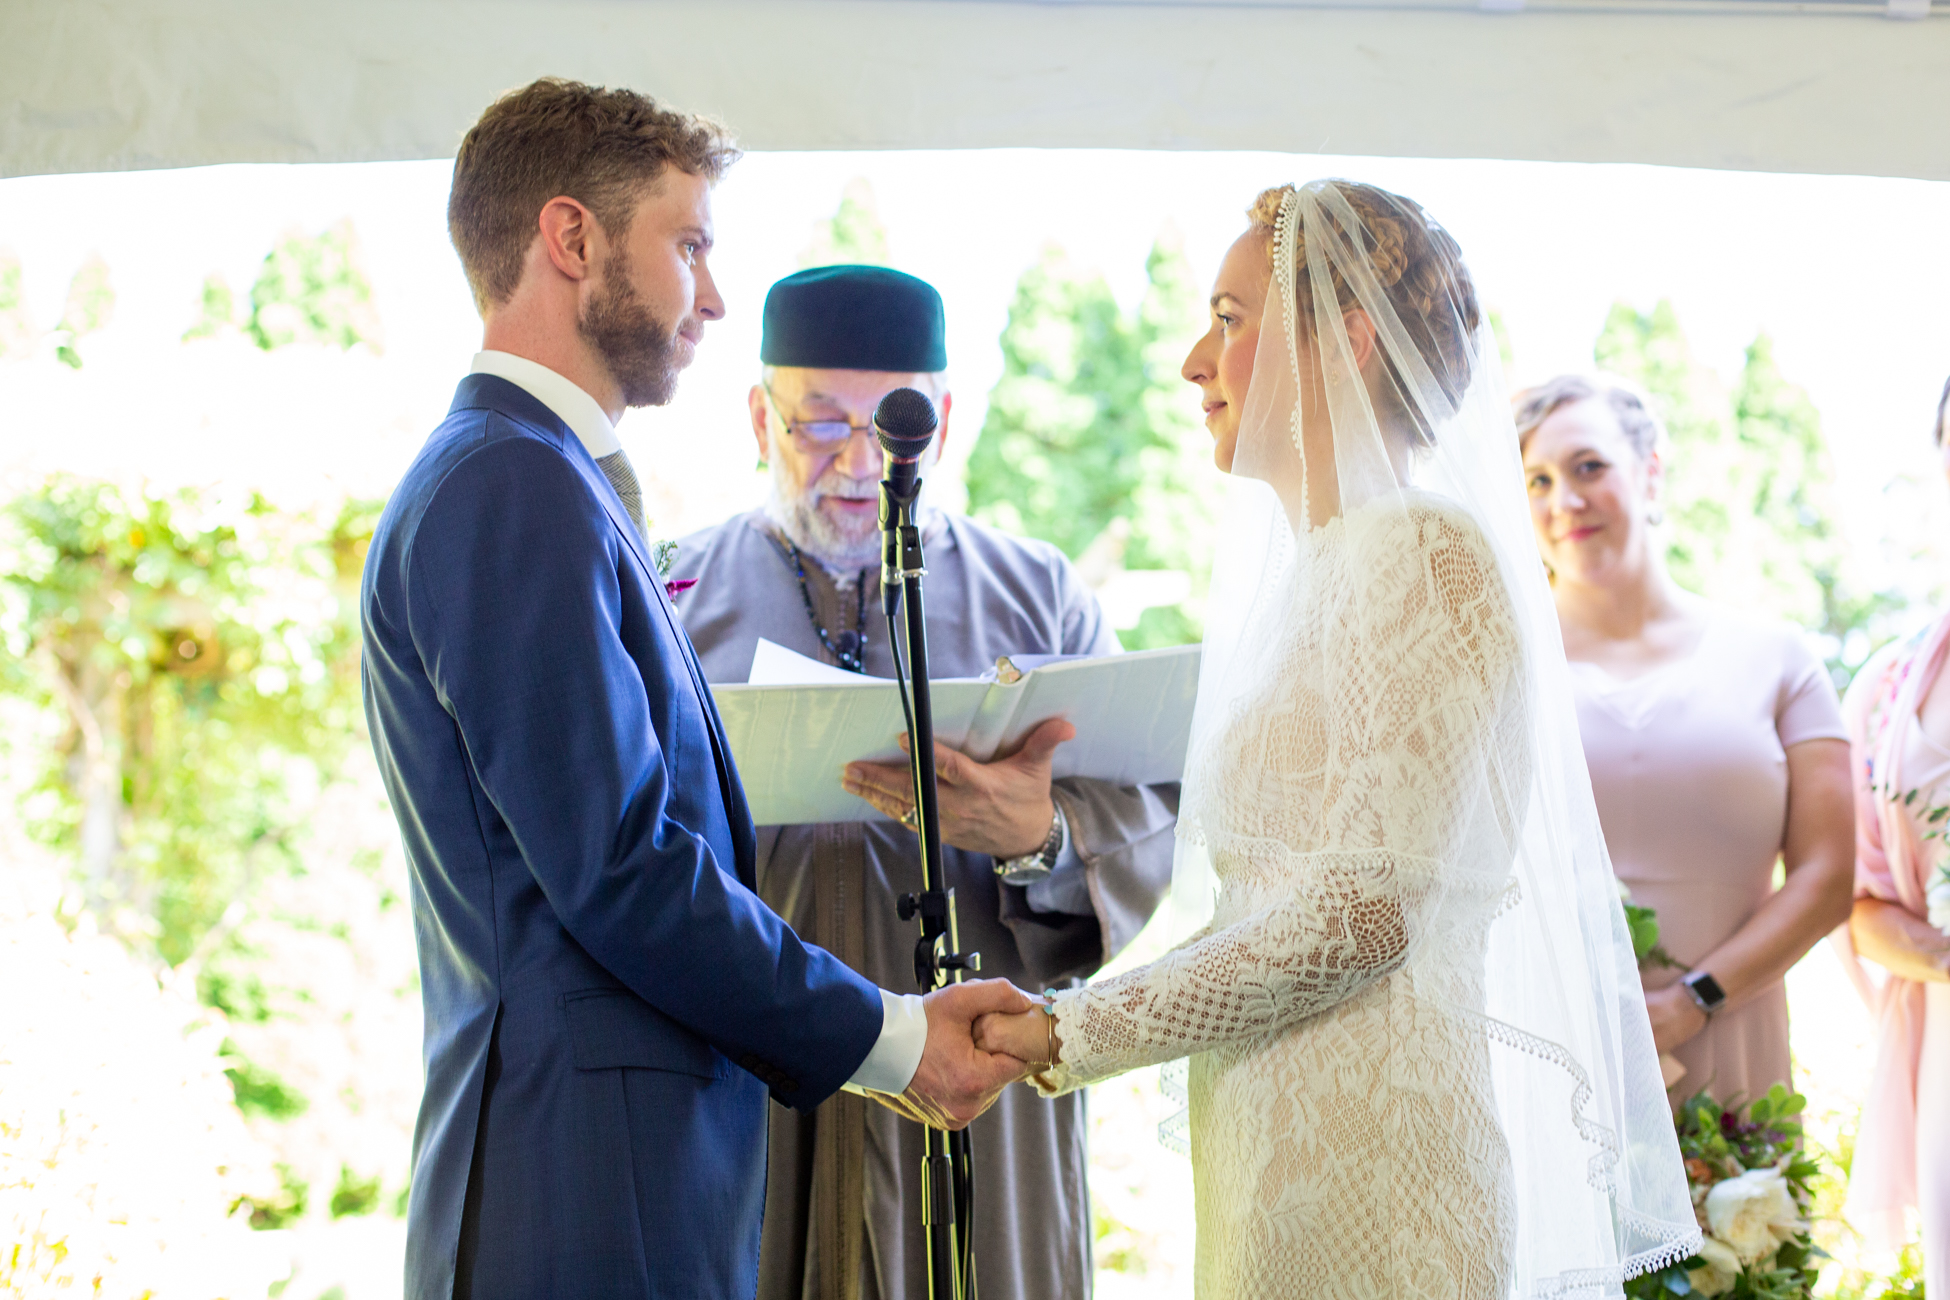 MaryFatimah and Noah's Summer Wedding at Bawa Muhaiyaddeen Fellowship Farm by Avi Loren Fox LLC-23.jpg